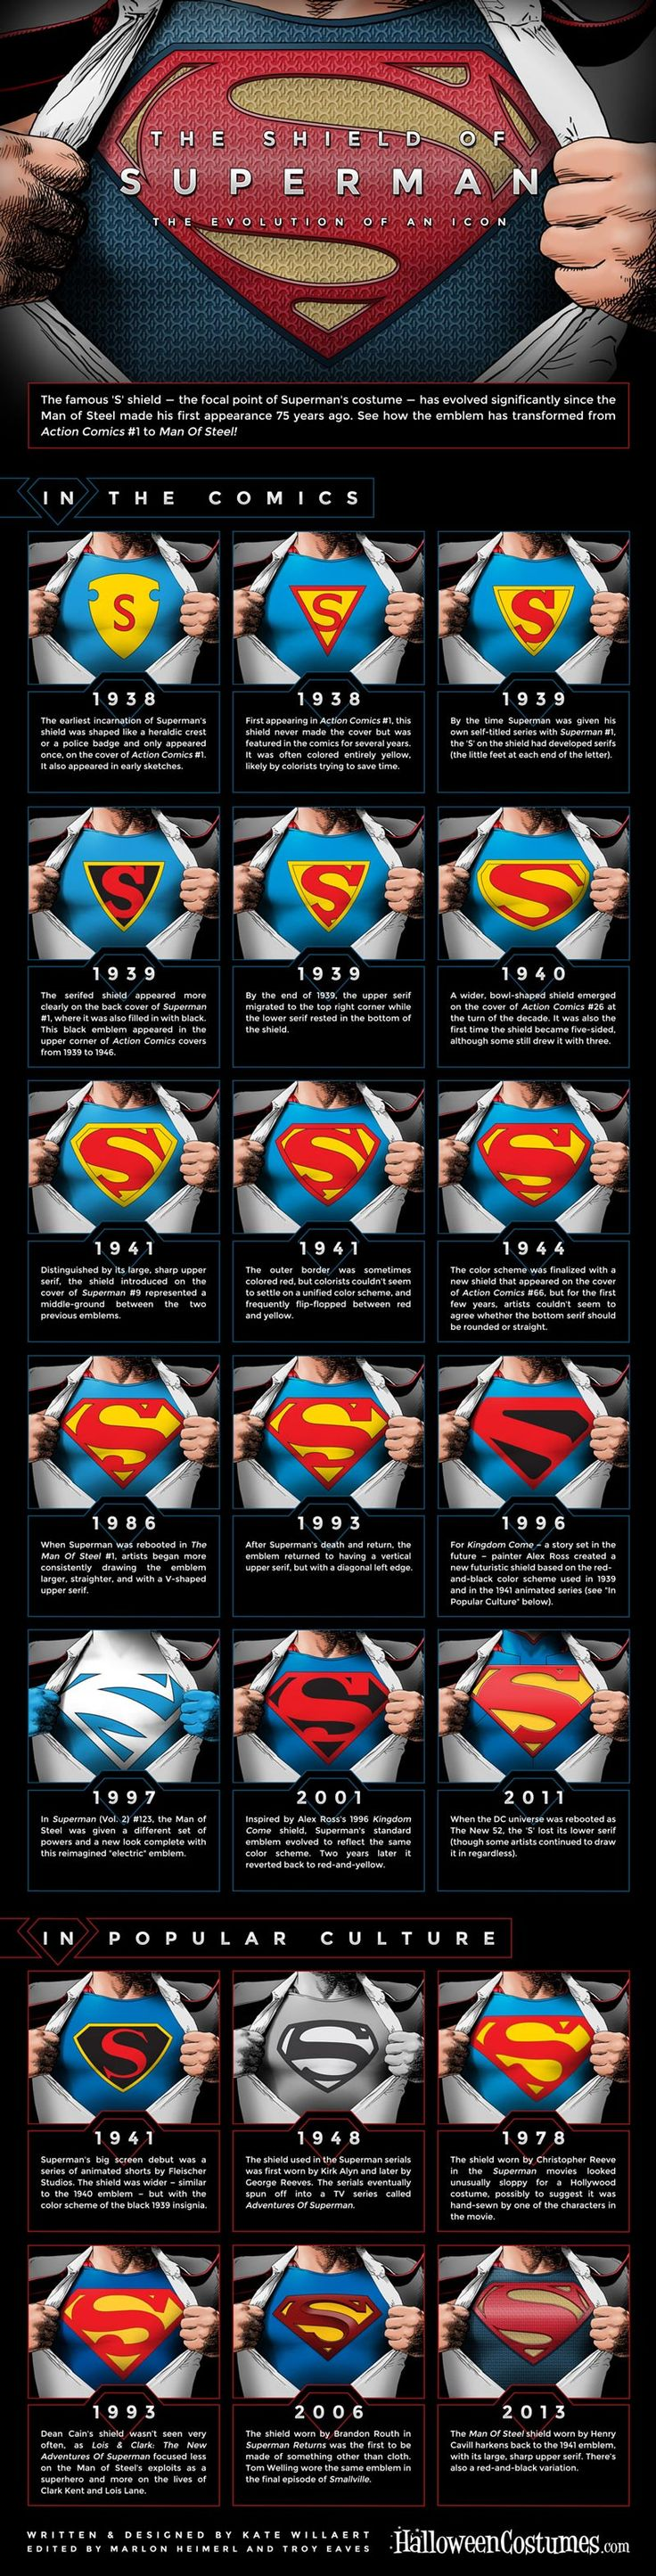 #INFOgraphic > Superman Logo Evolution: Sooner or later everything changes in this world. And so does the everlasting Superman logo. See here the variations of the S shield alongside its design concepts from the early years of action comics to the 2013 return of the Man of Steel.  > http://infographicsmania.com/superman-logo-evolution/